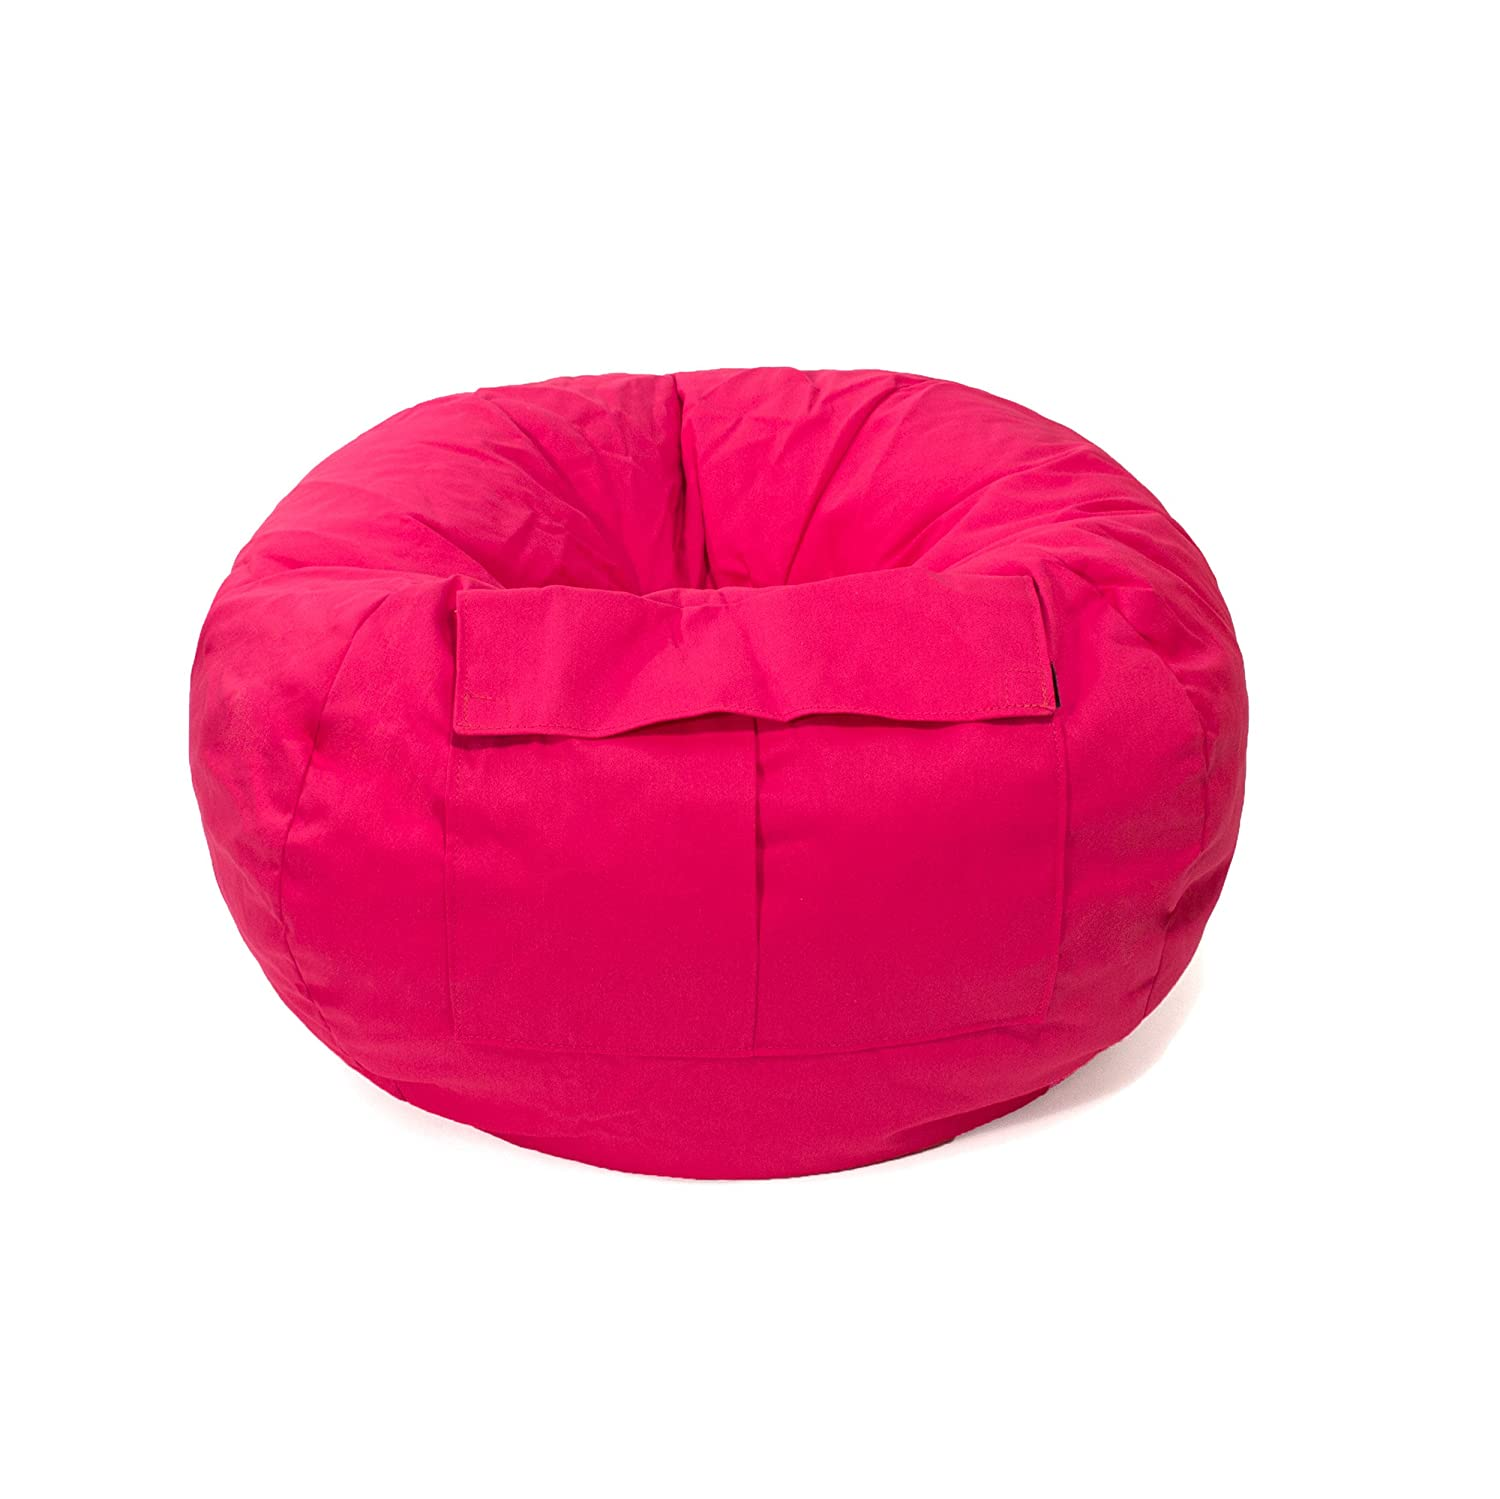 Pink bean bag chair - Amazon Com Gold Medal Bean Bags 31008484922 Small Denim Bean Bag With Pocket For Children Pink Baby